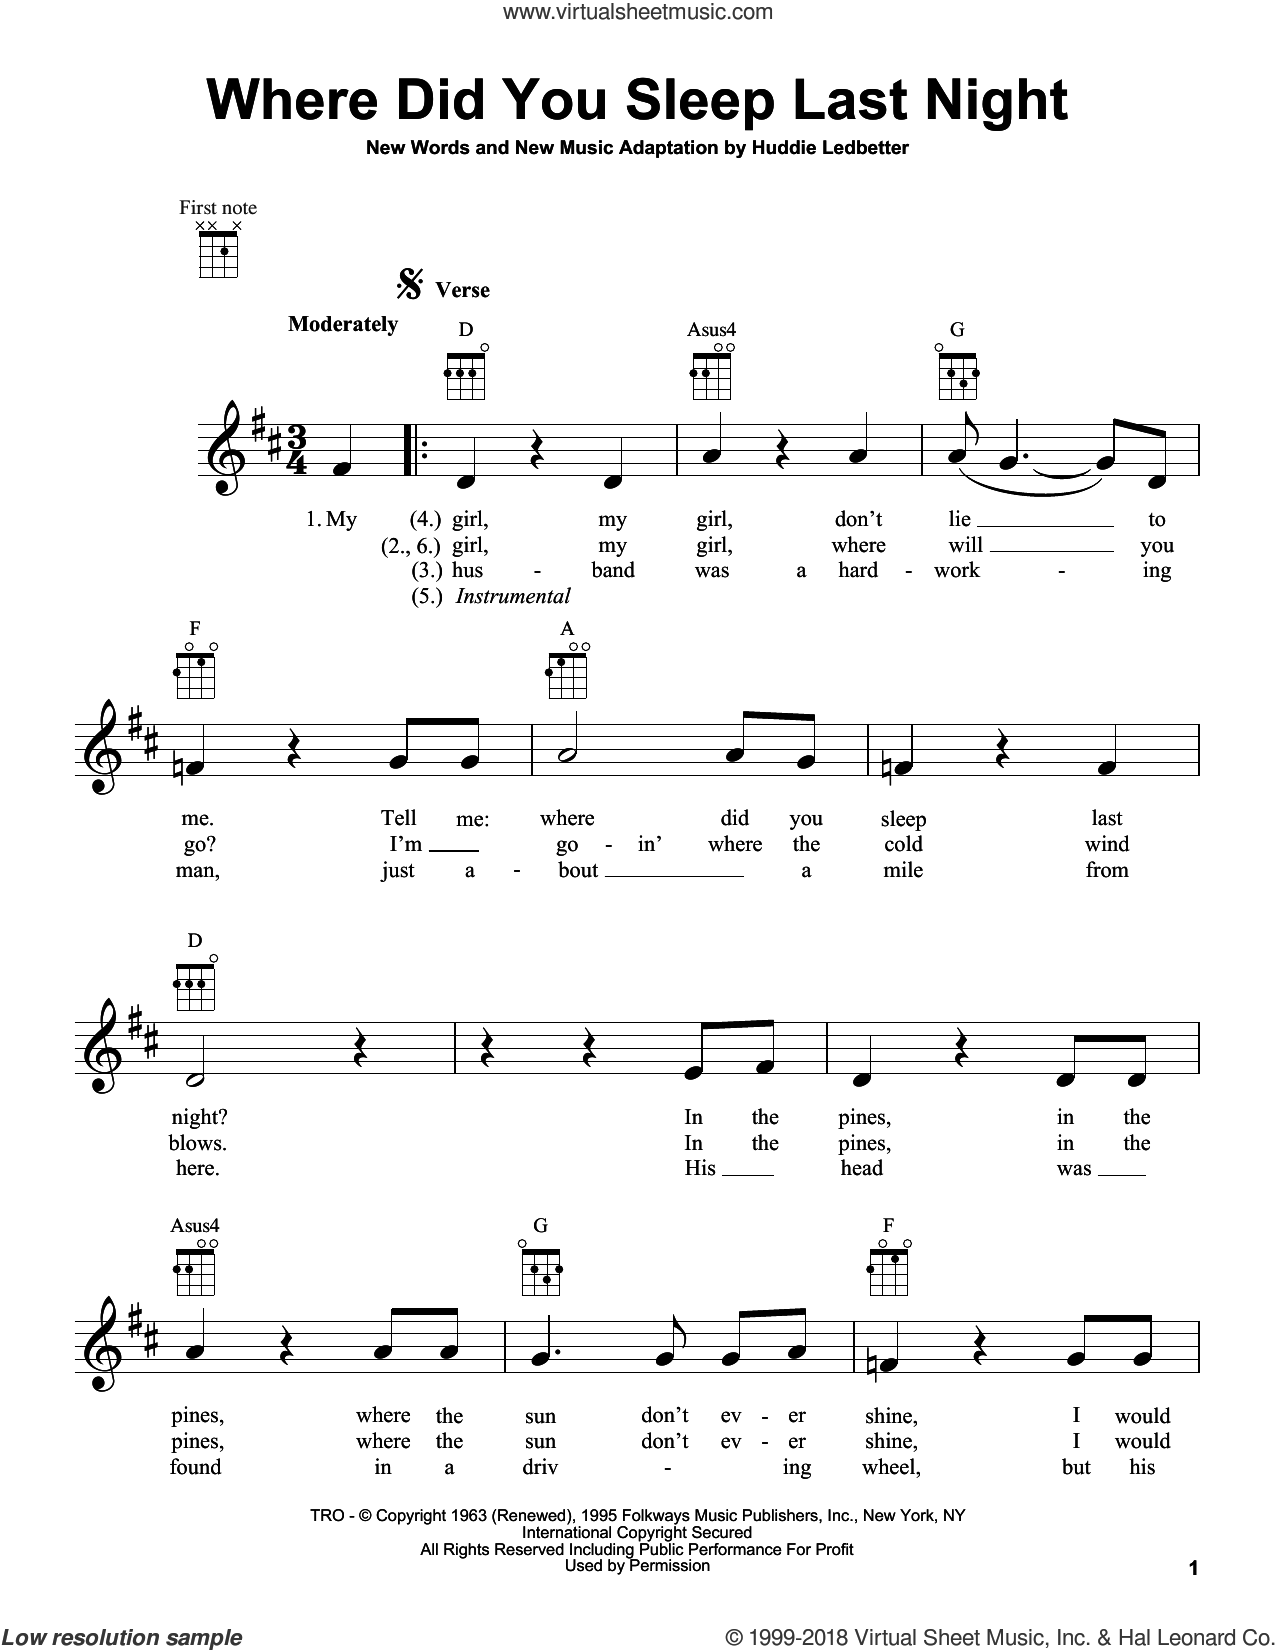 Where Did You Sleep Last Night sheet music for ukulele by Huddie Ledbetter and Nirvana. Score Image Preview.